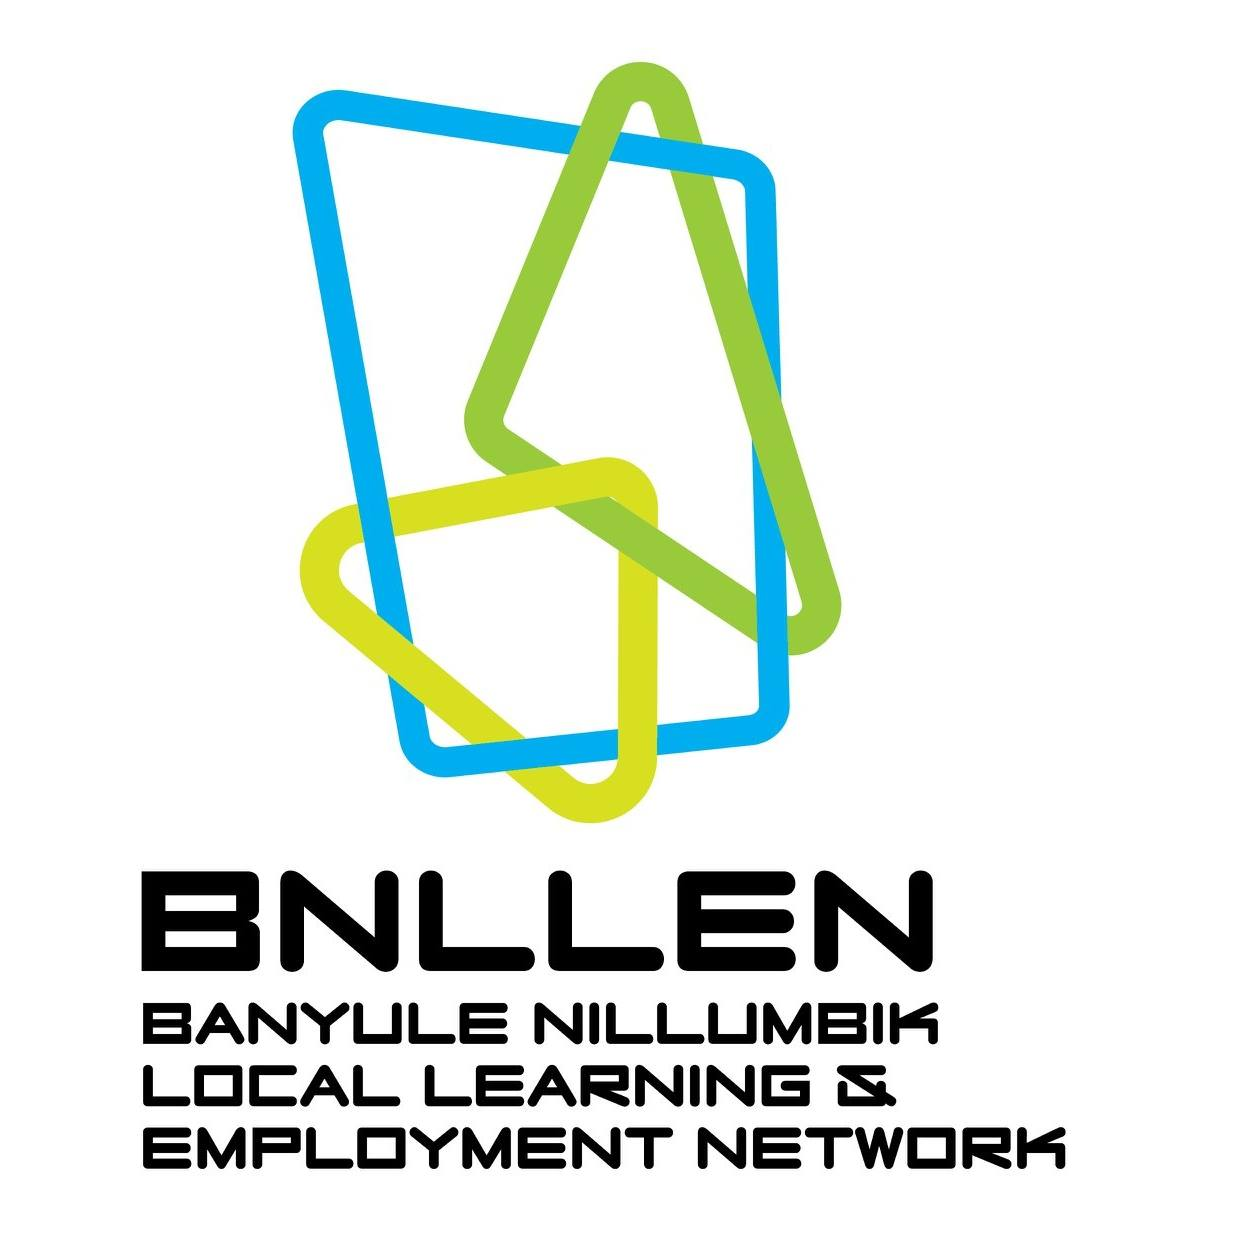 Banyule Nillumbik Local Learning and Employment Network logo